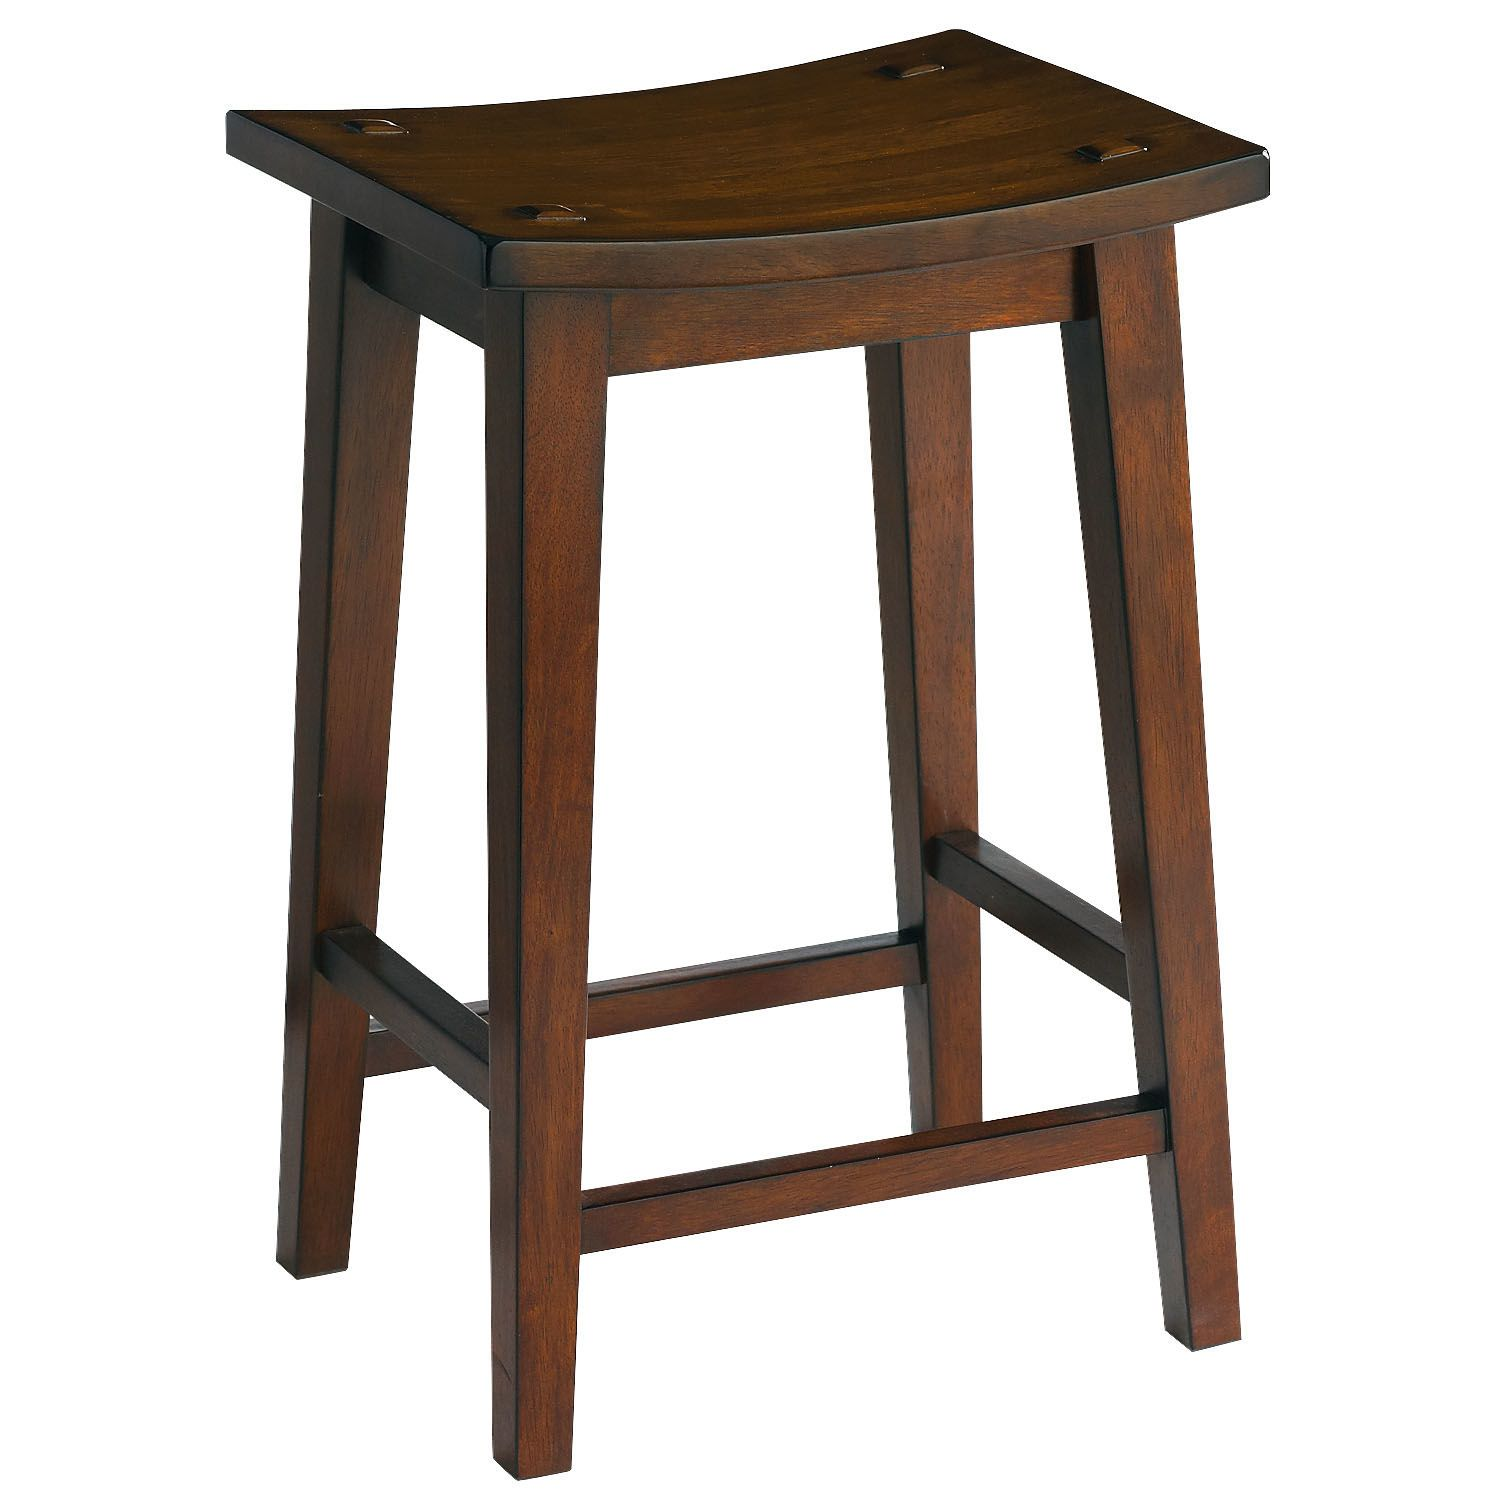 Lawson Backless Bar Counterstools Tuscan Brown Counter Stools Backless Stool Counter Stools